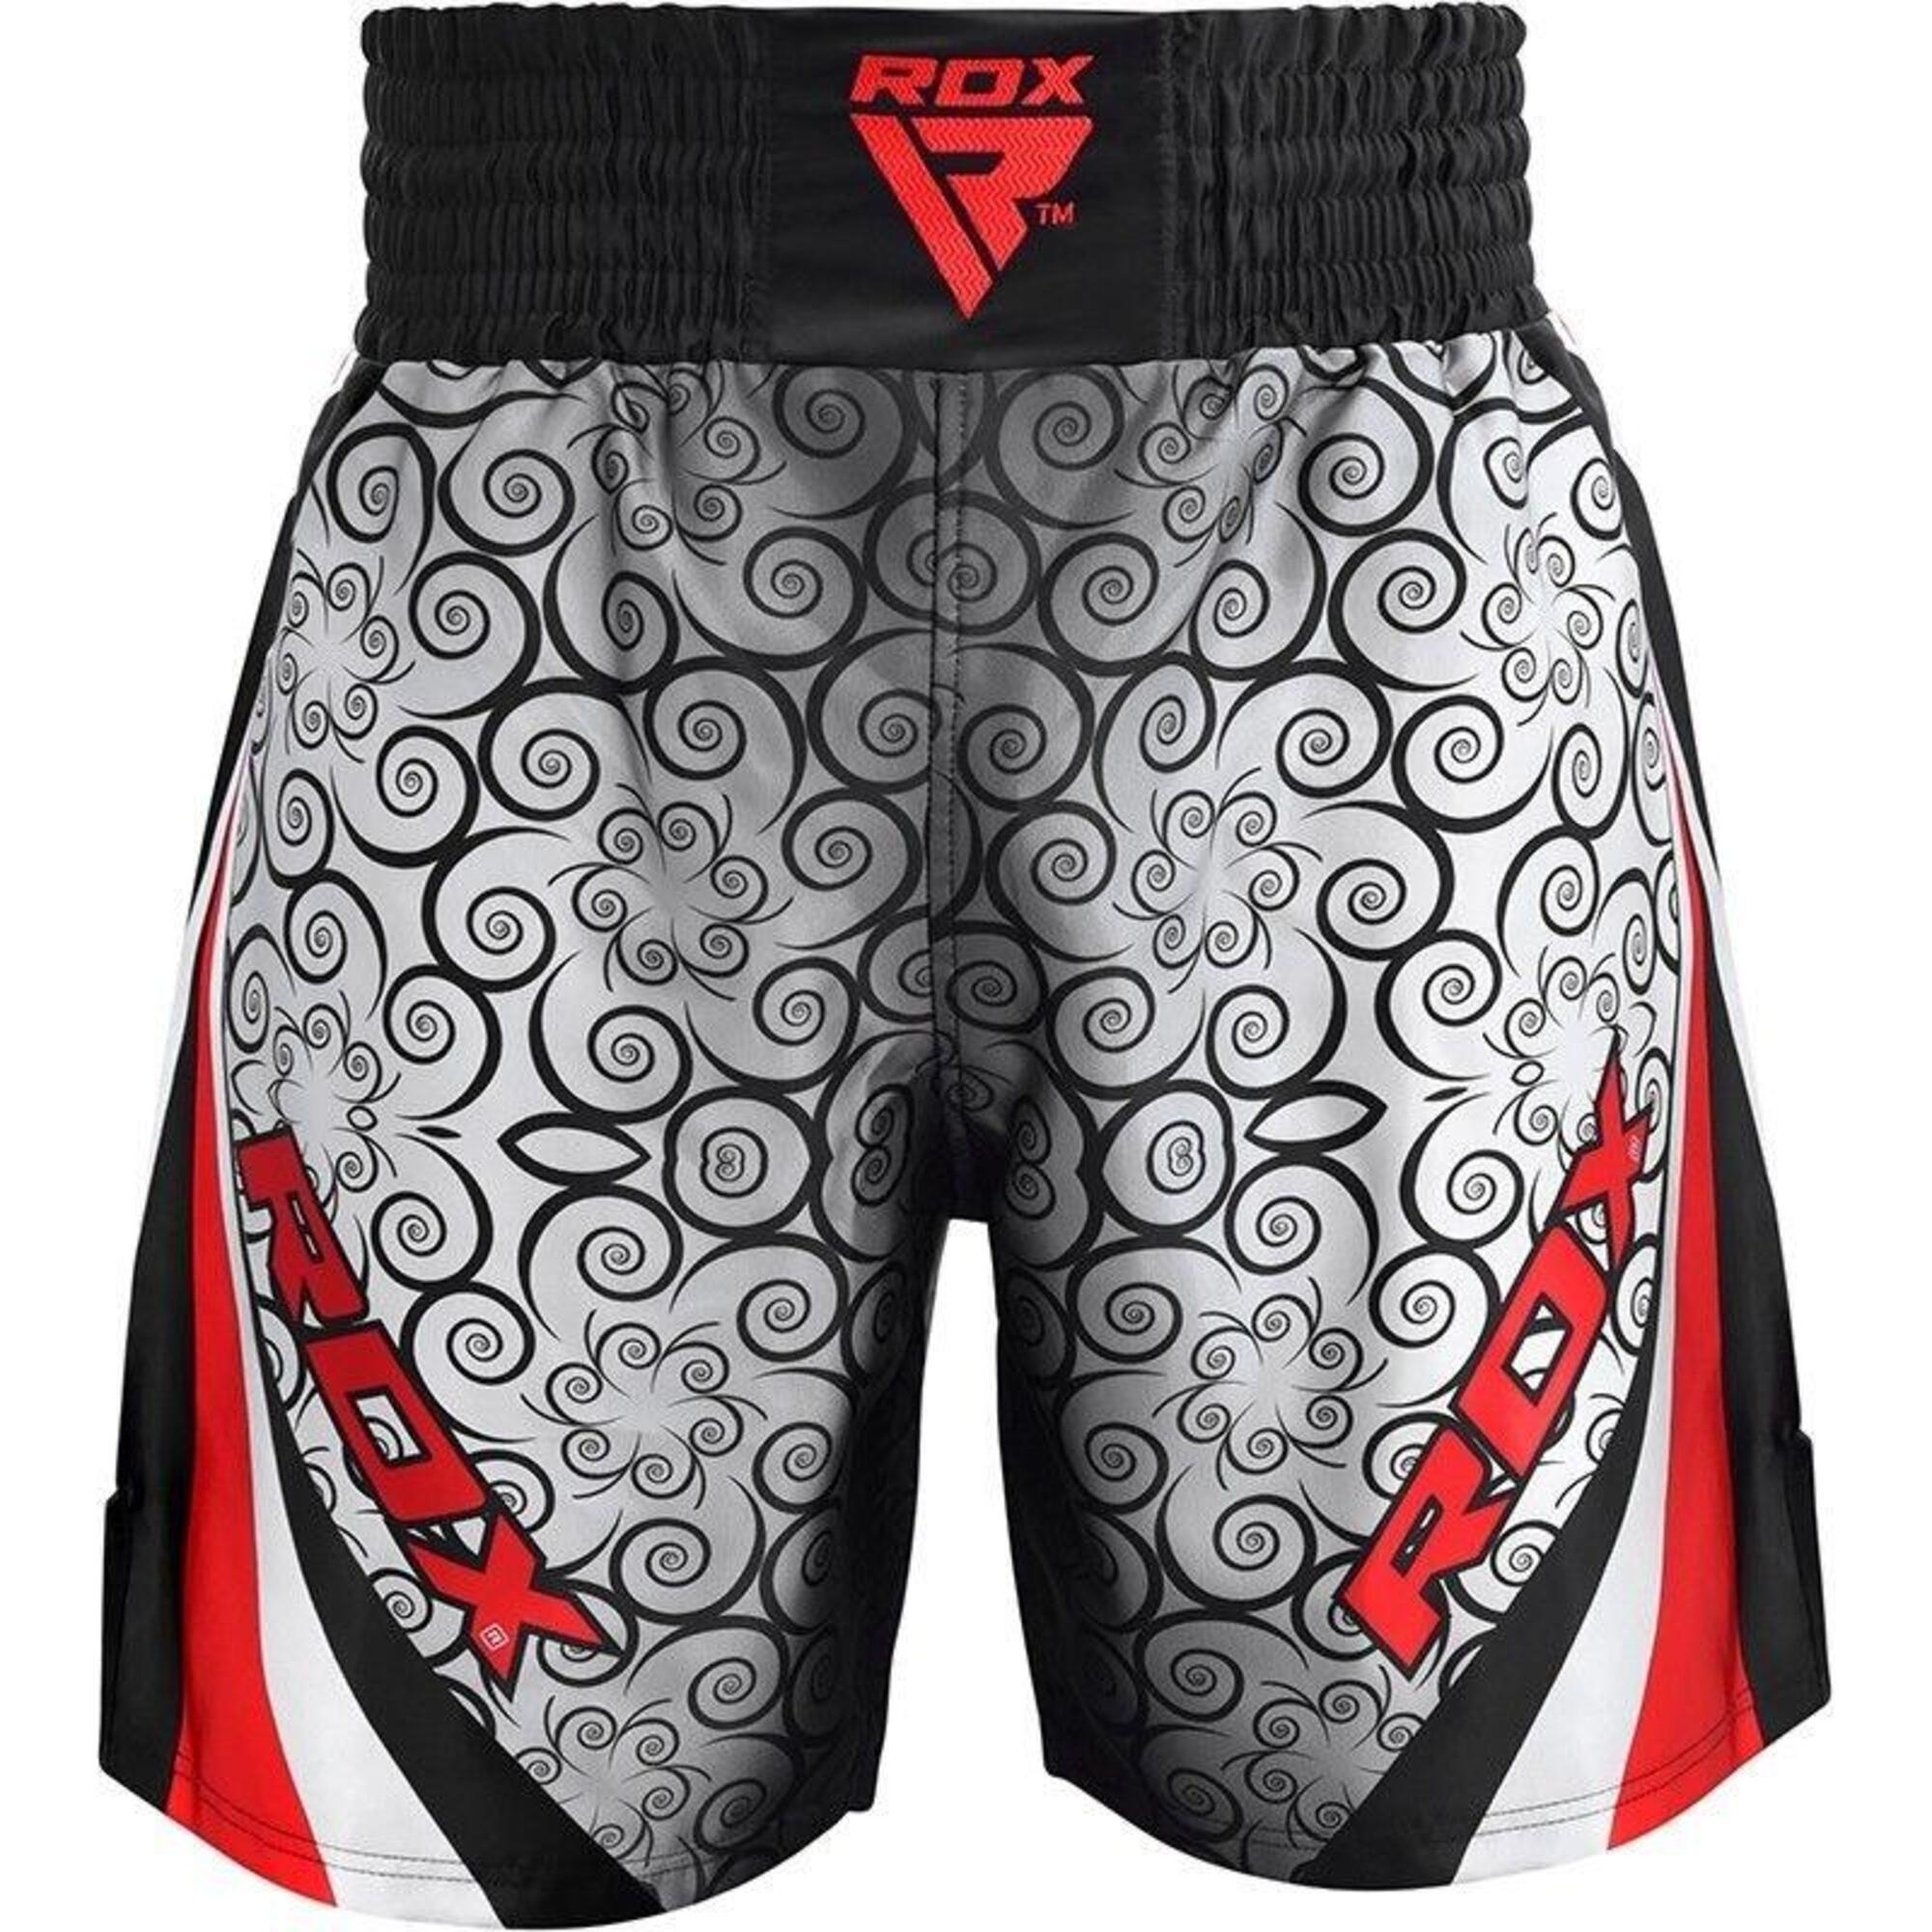 BSS Boxing Training Shorts Satin R1 - Rouge - S